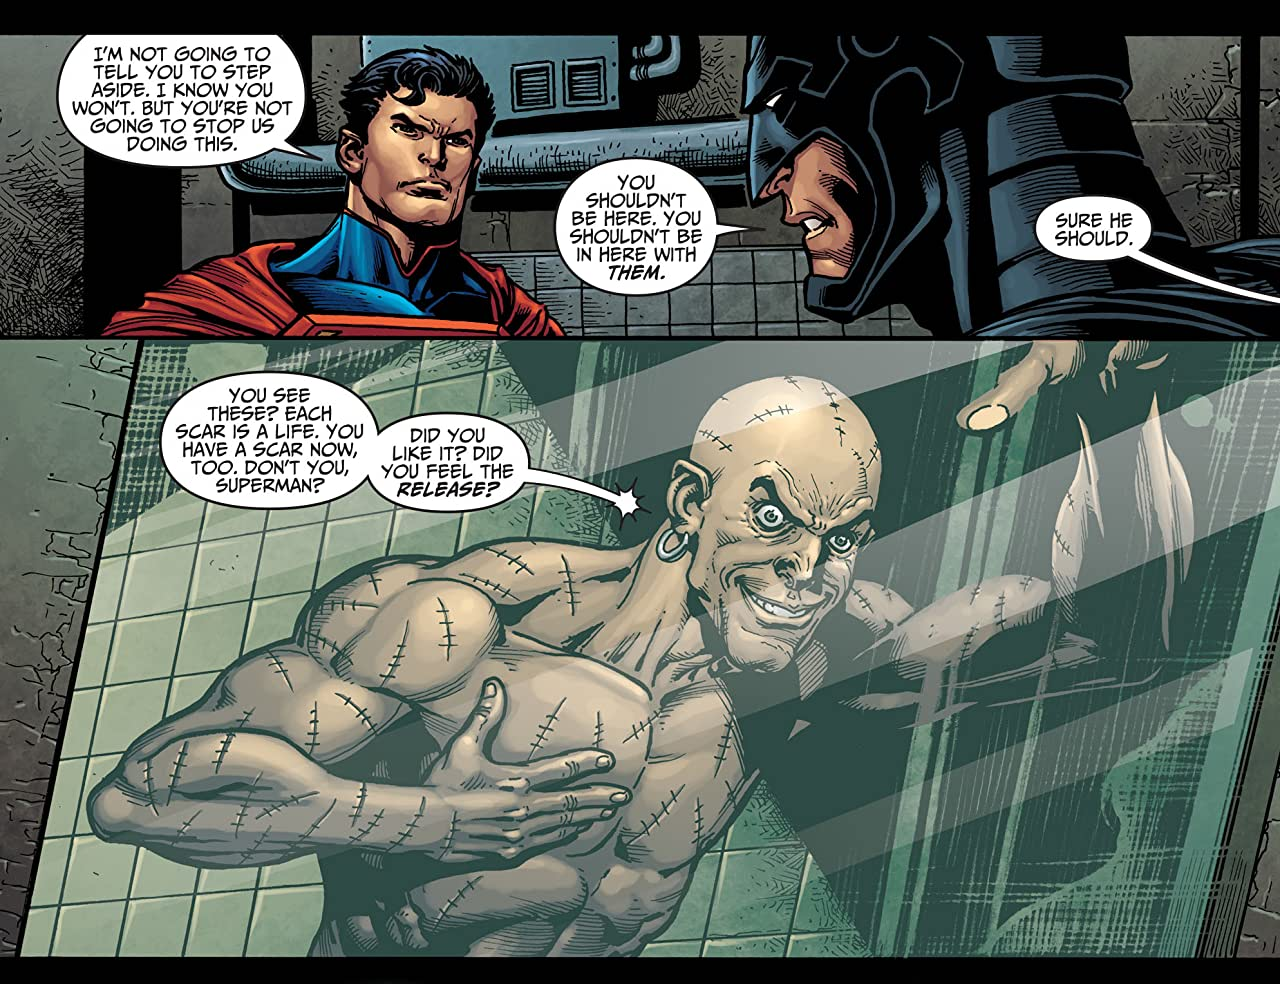 Injustice: Gods Among Us (2013) #15